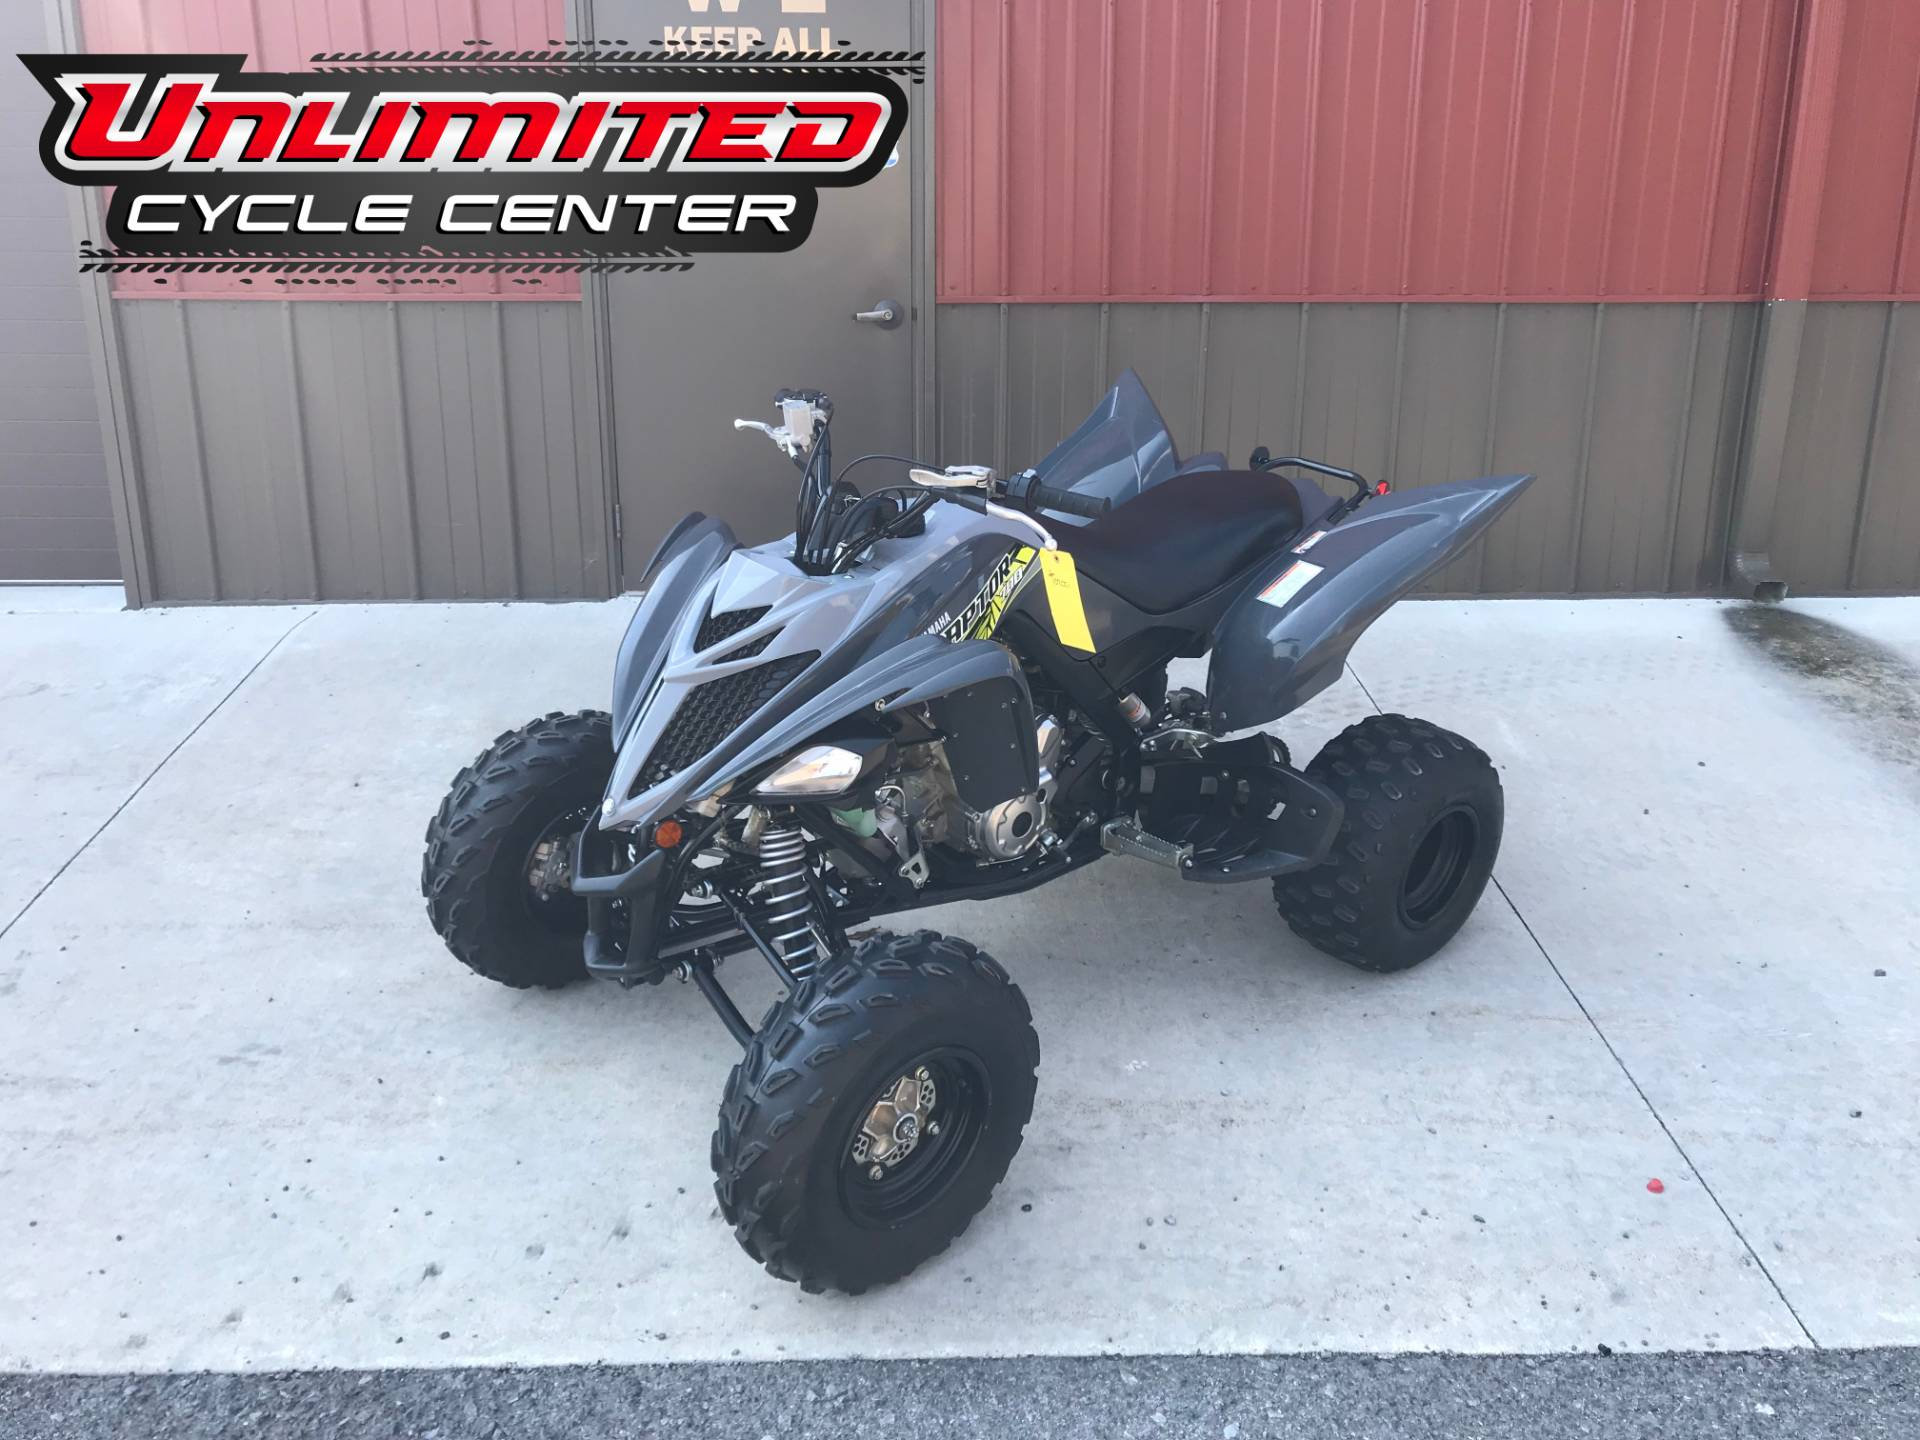 2019 Yamaha Raptor 700 in Tyrone, Pennsylvania - Photo 1